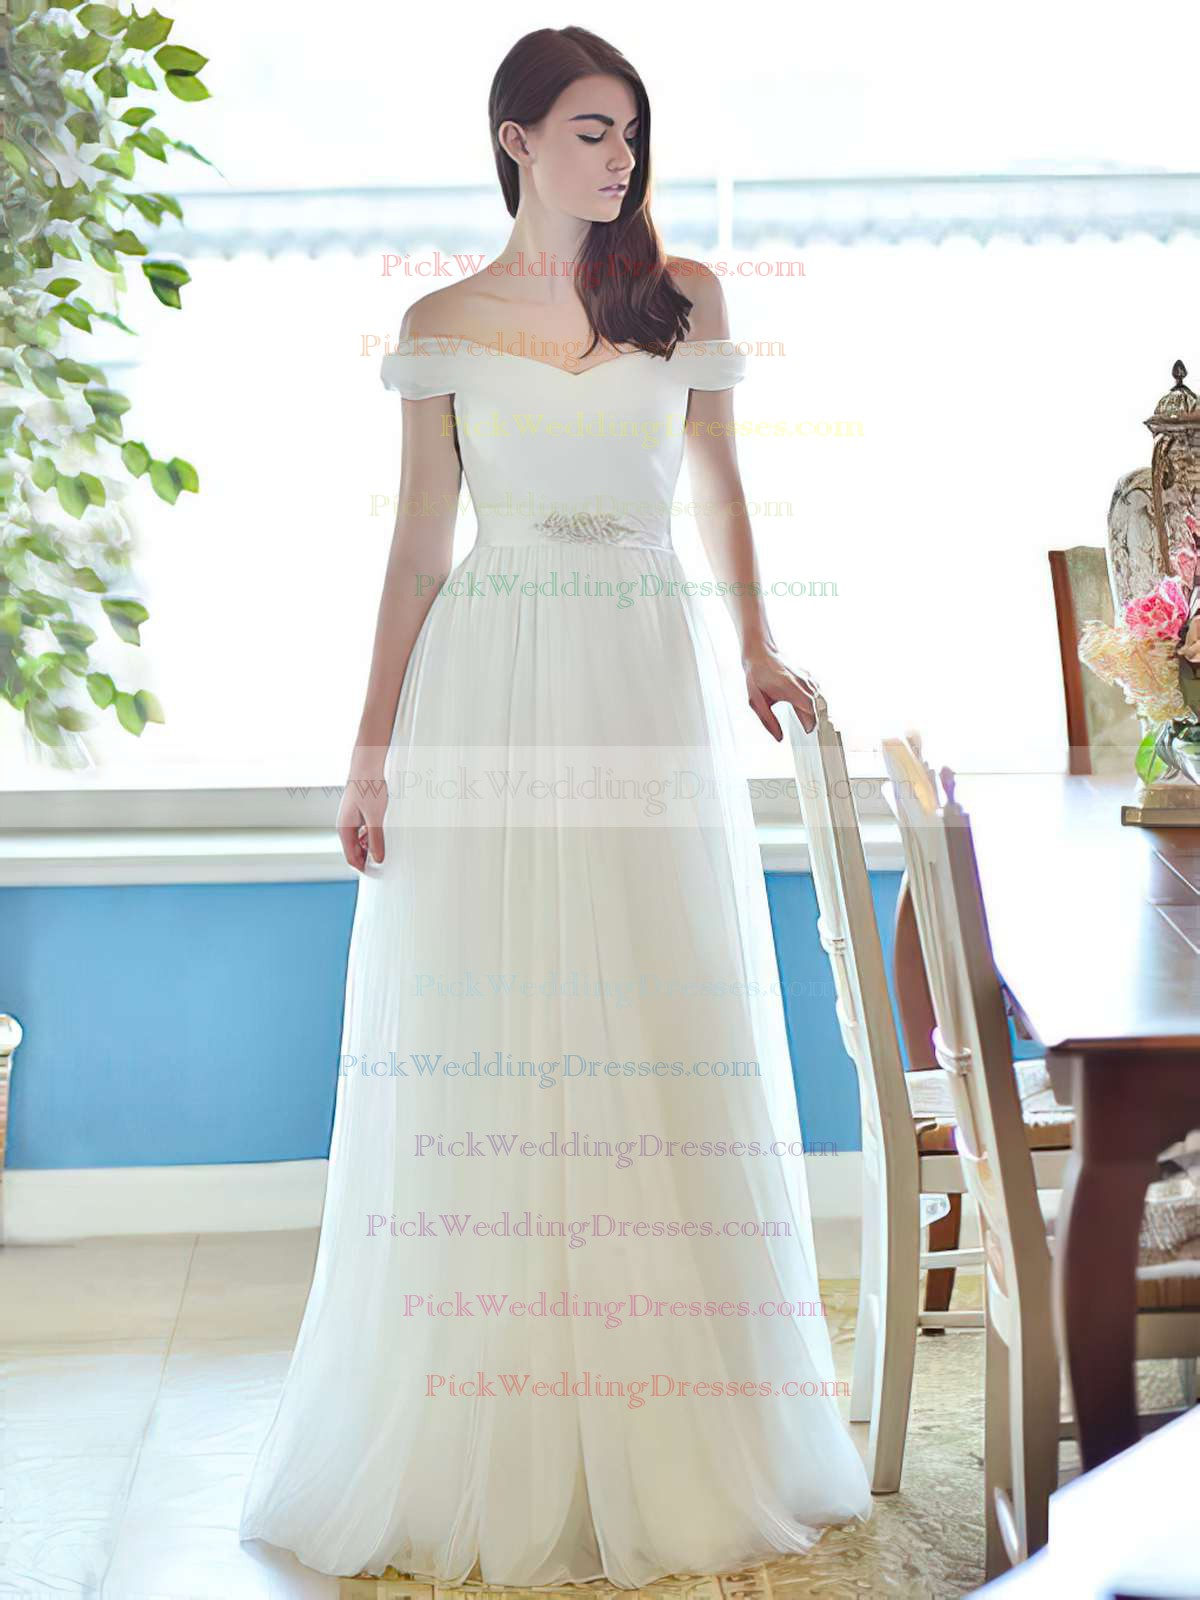 http://www.pickweddingdresses.com/ivory-tulle-straps-with-sashes-ribbons-elegant-off-the-shoulder-wedding-dress-pwd00021284-p1160.html?utm_source=post&utm_medium=PWD007&utm_campaign=blog